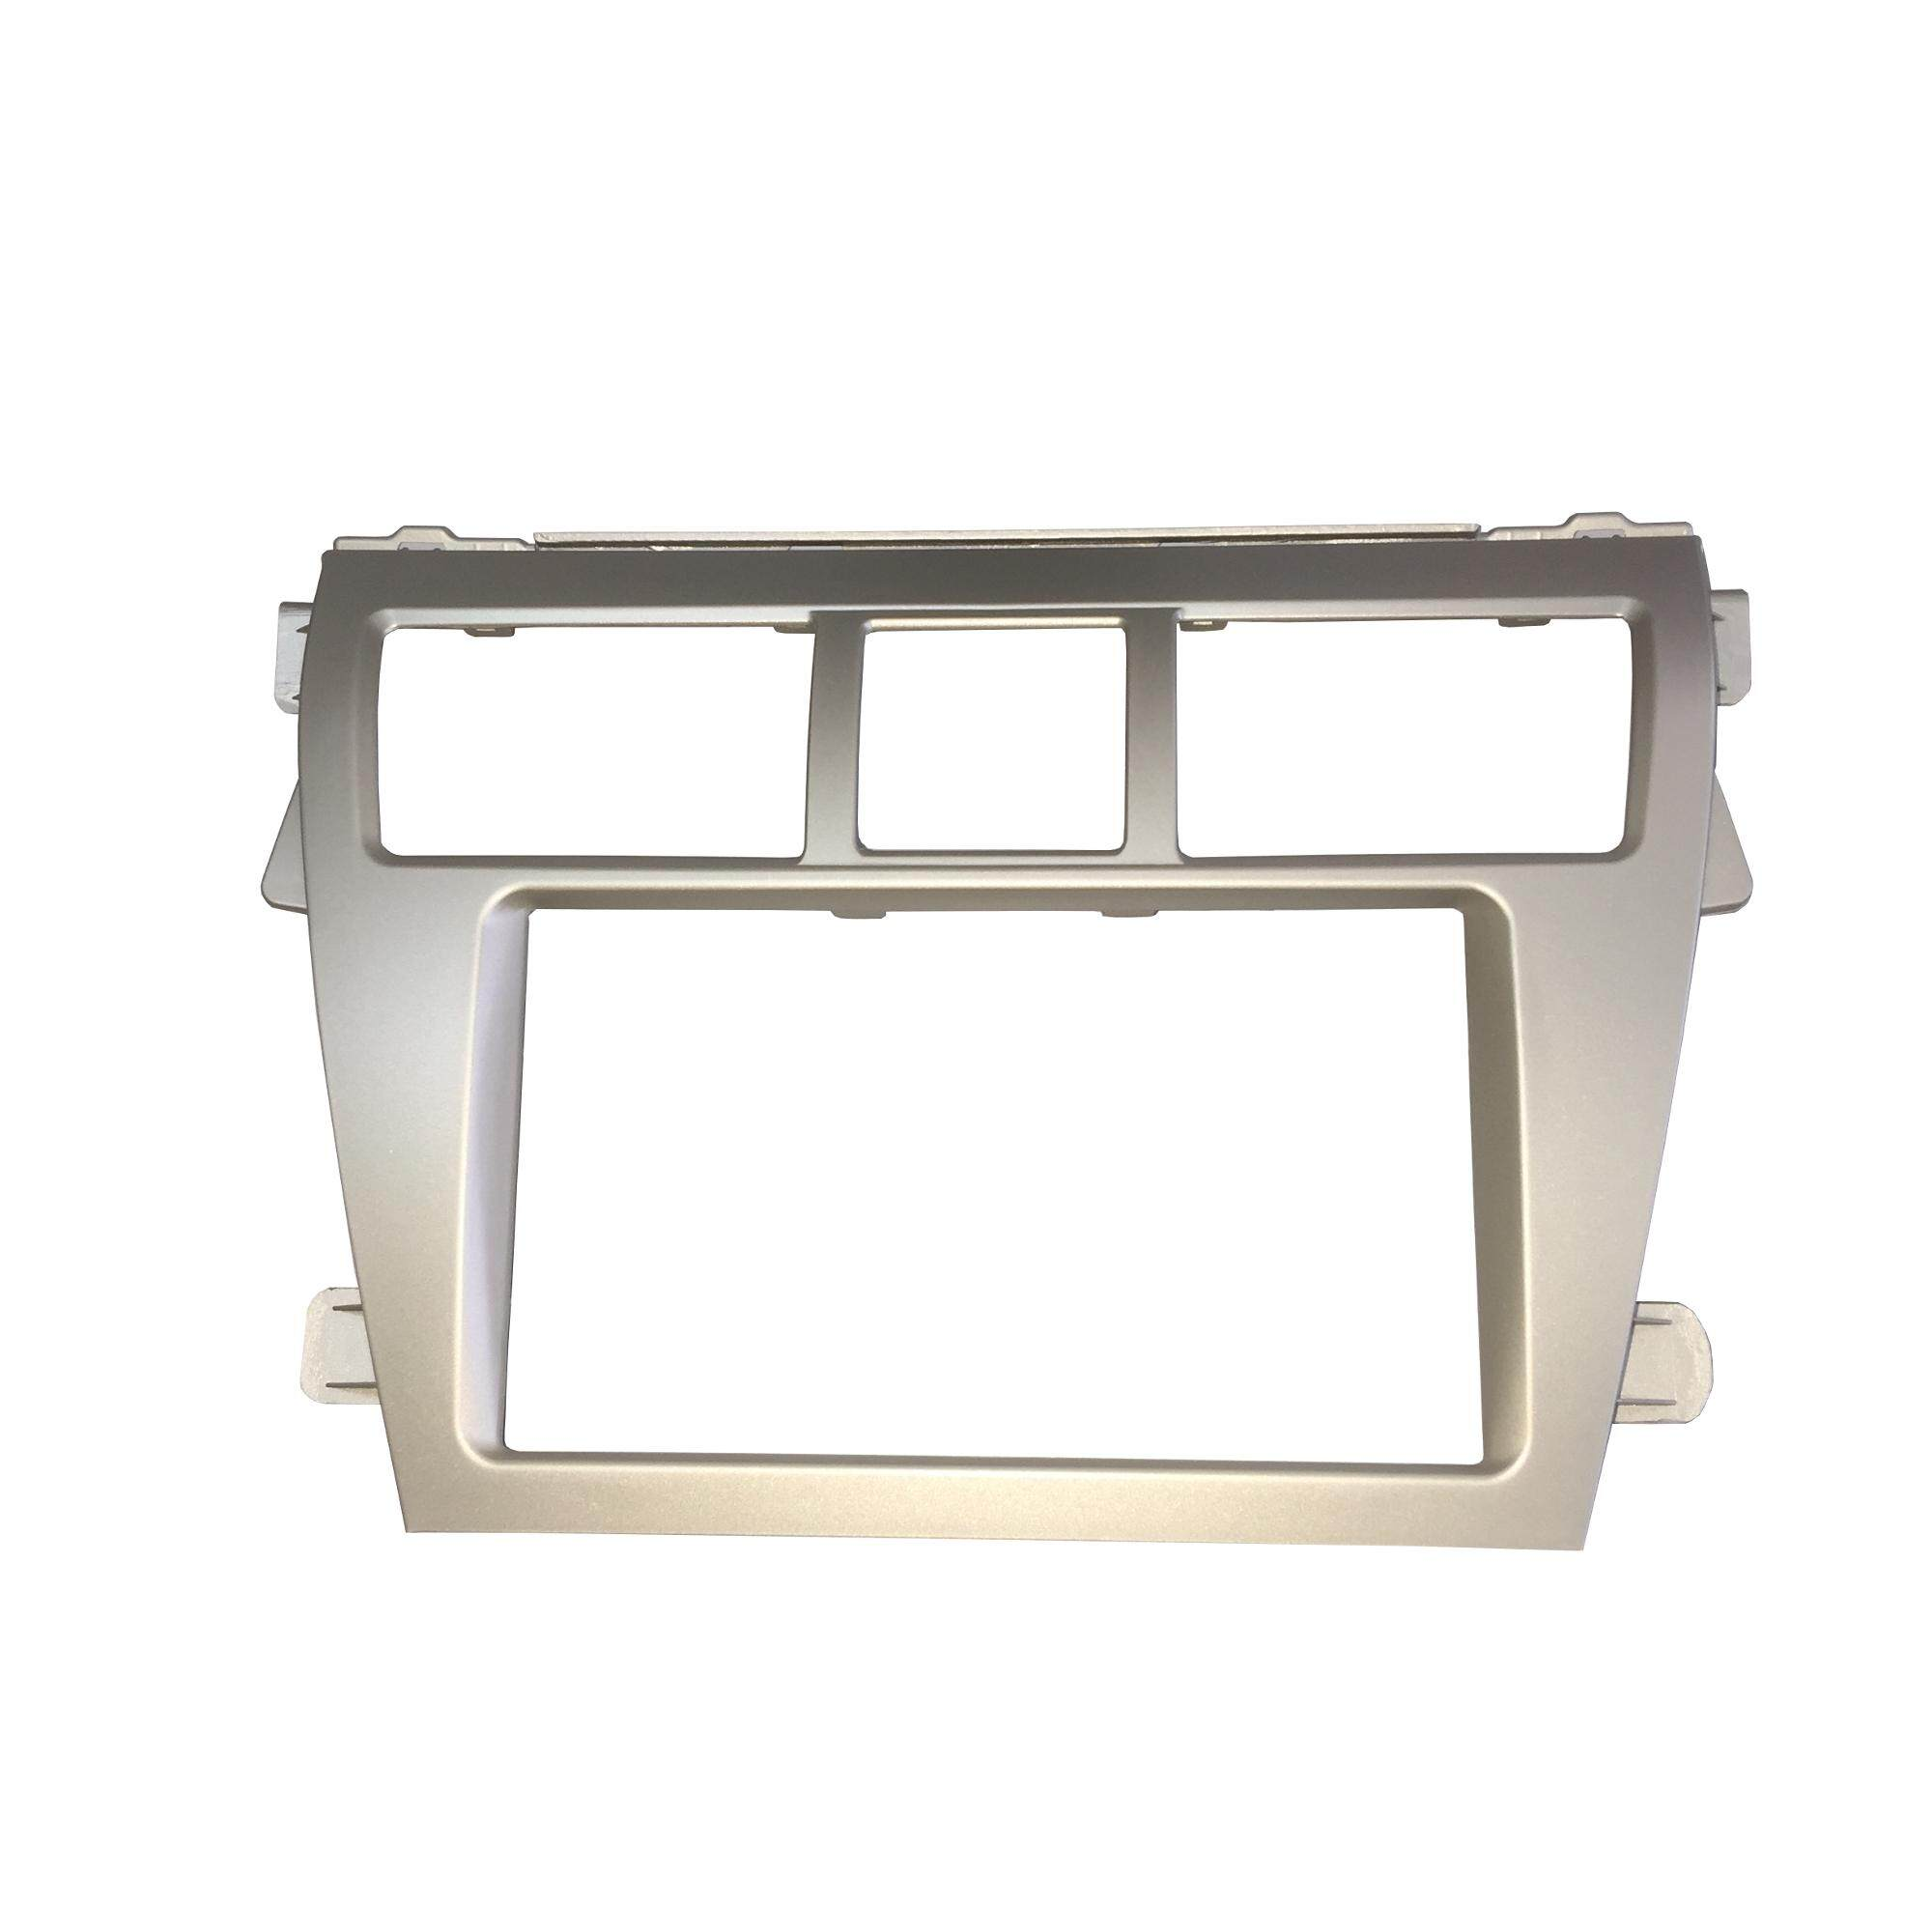 Toyota Vios 2007-2013 Double DIn Casing(Silver)